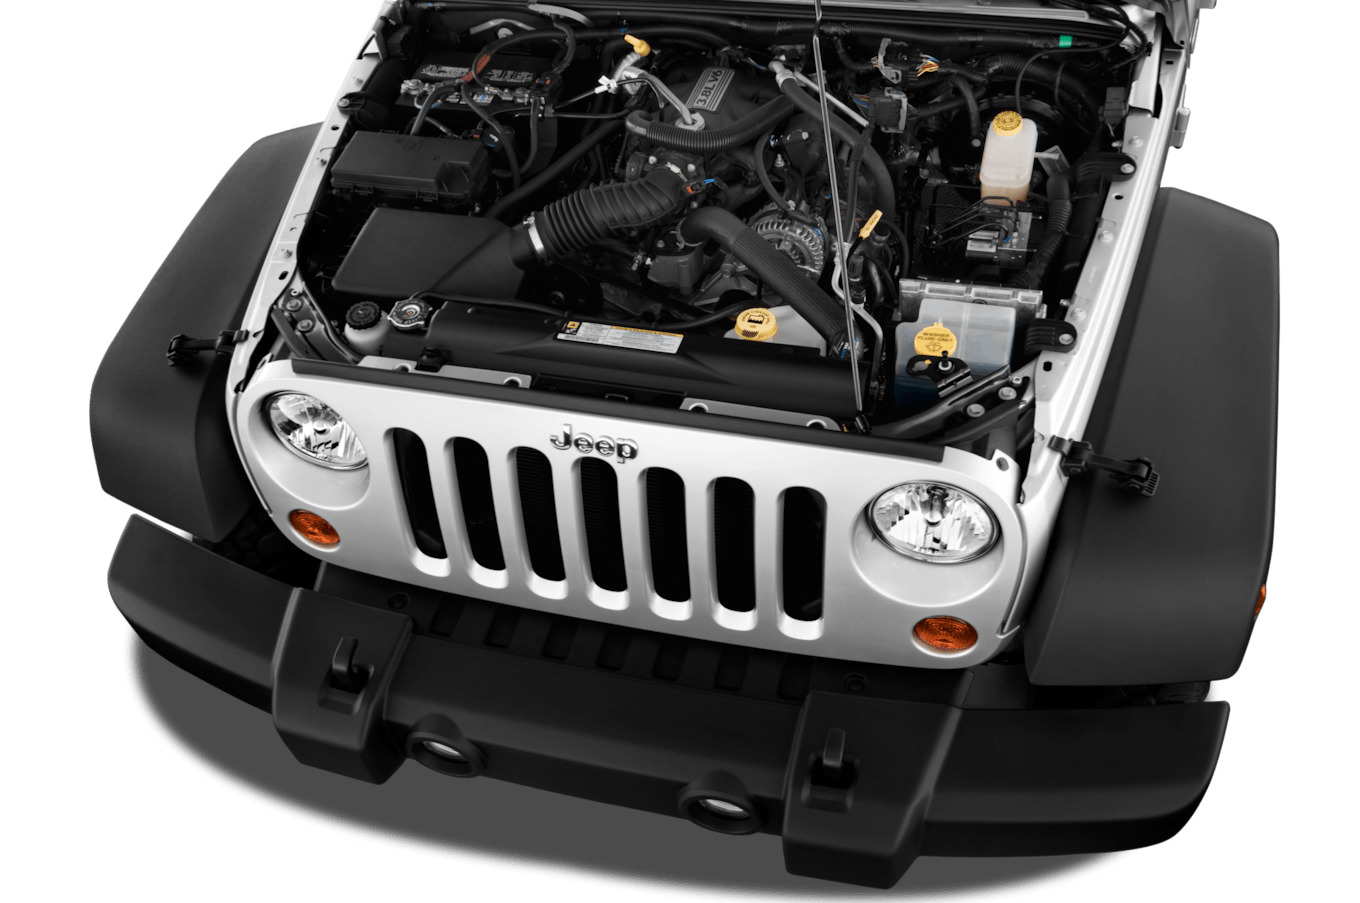 Jeep Cj5 Wiring Diagram Furthermore Jeep Wiring Diagram On Images Of